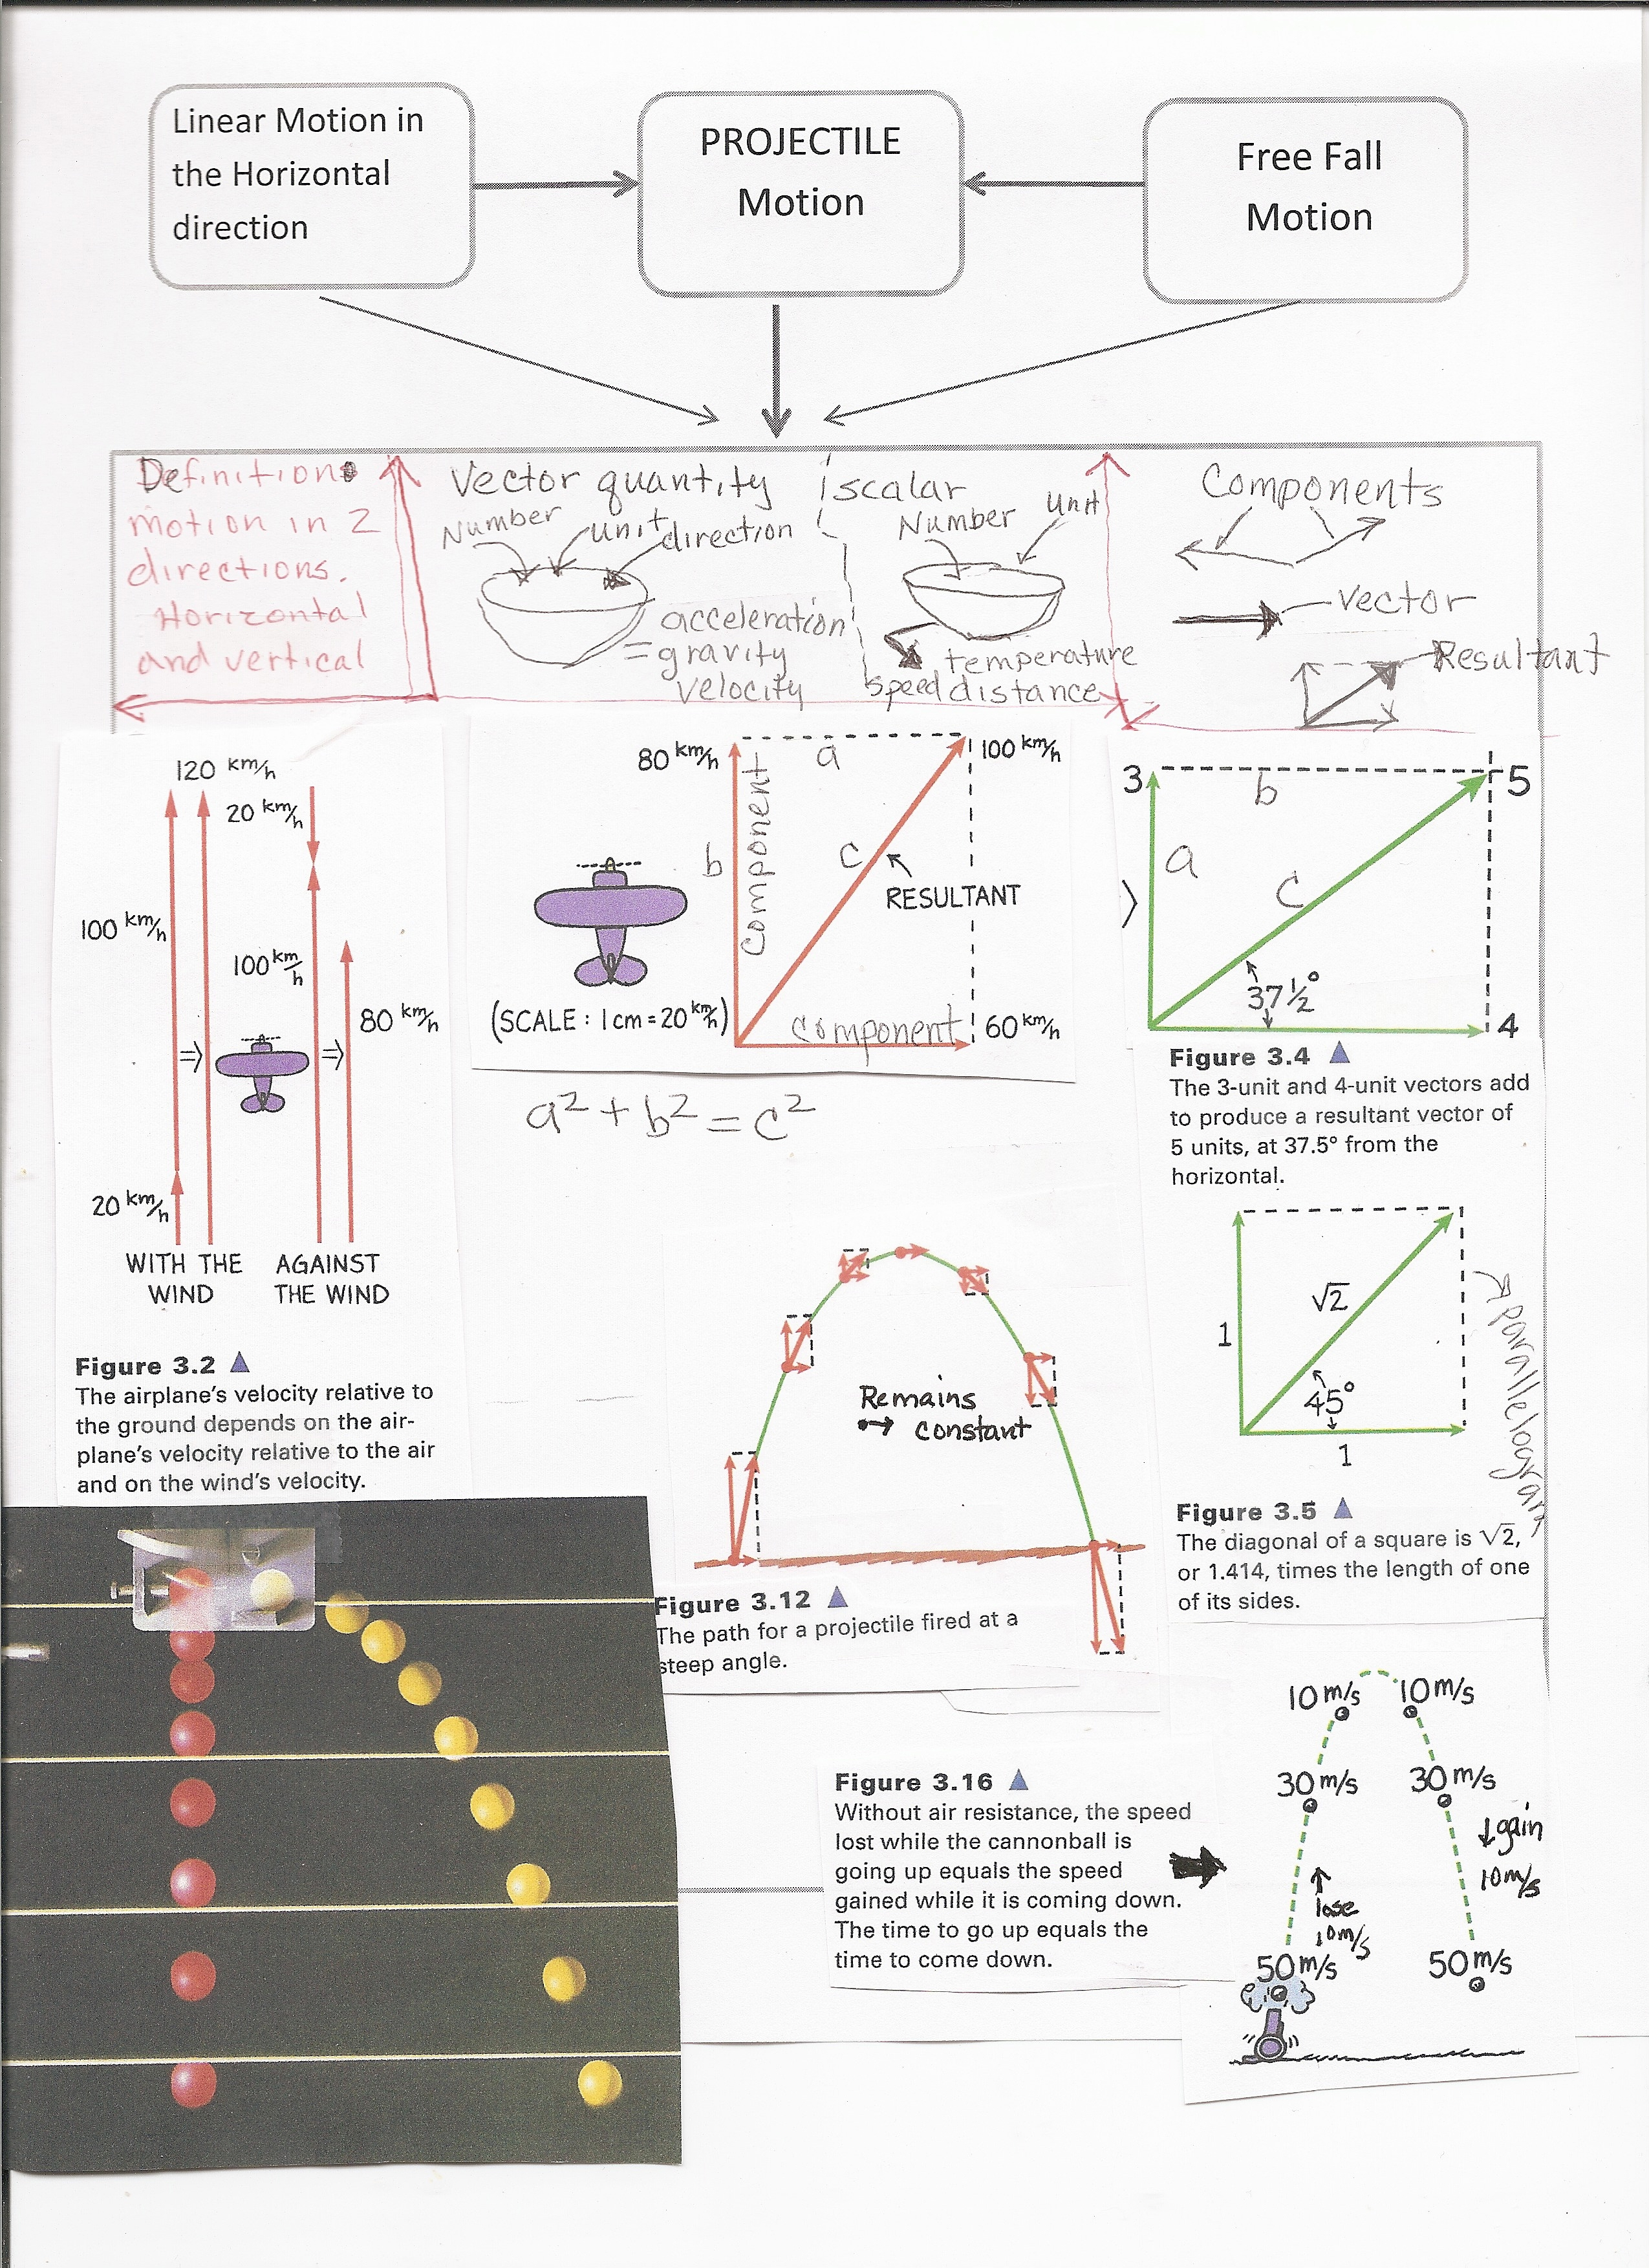 Physics Vect S W Ksheet Free W Ksheets Libr Ry Downlo D Nd